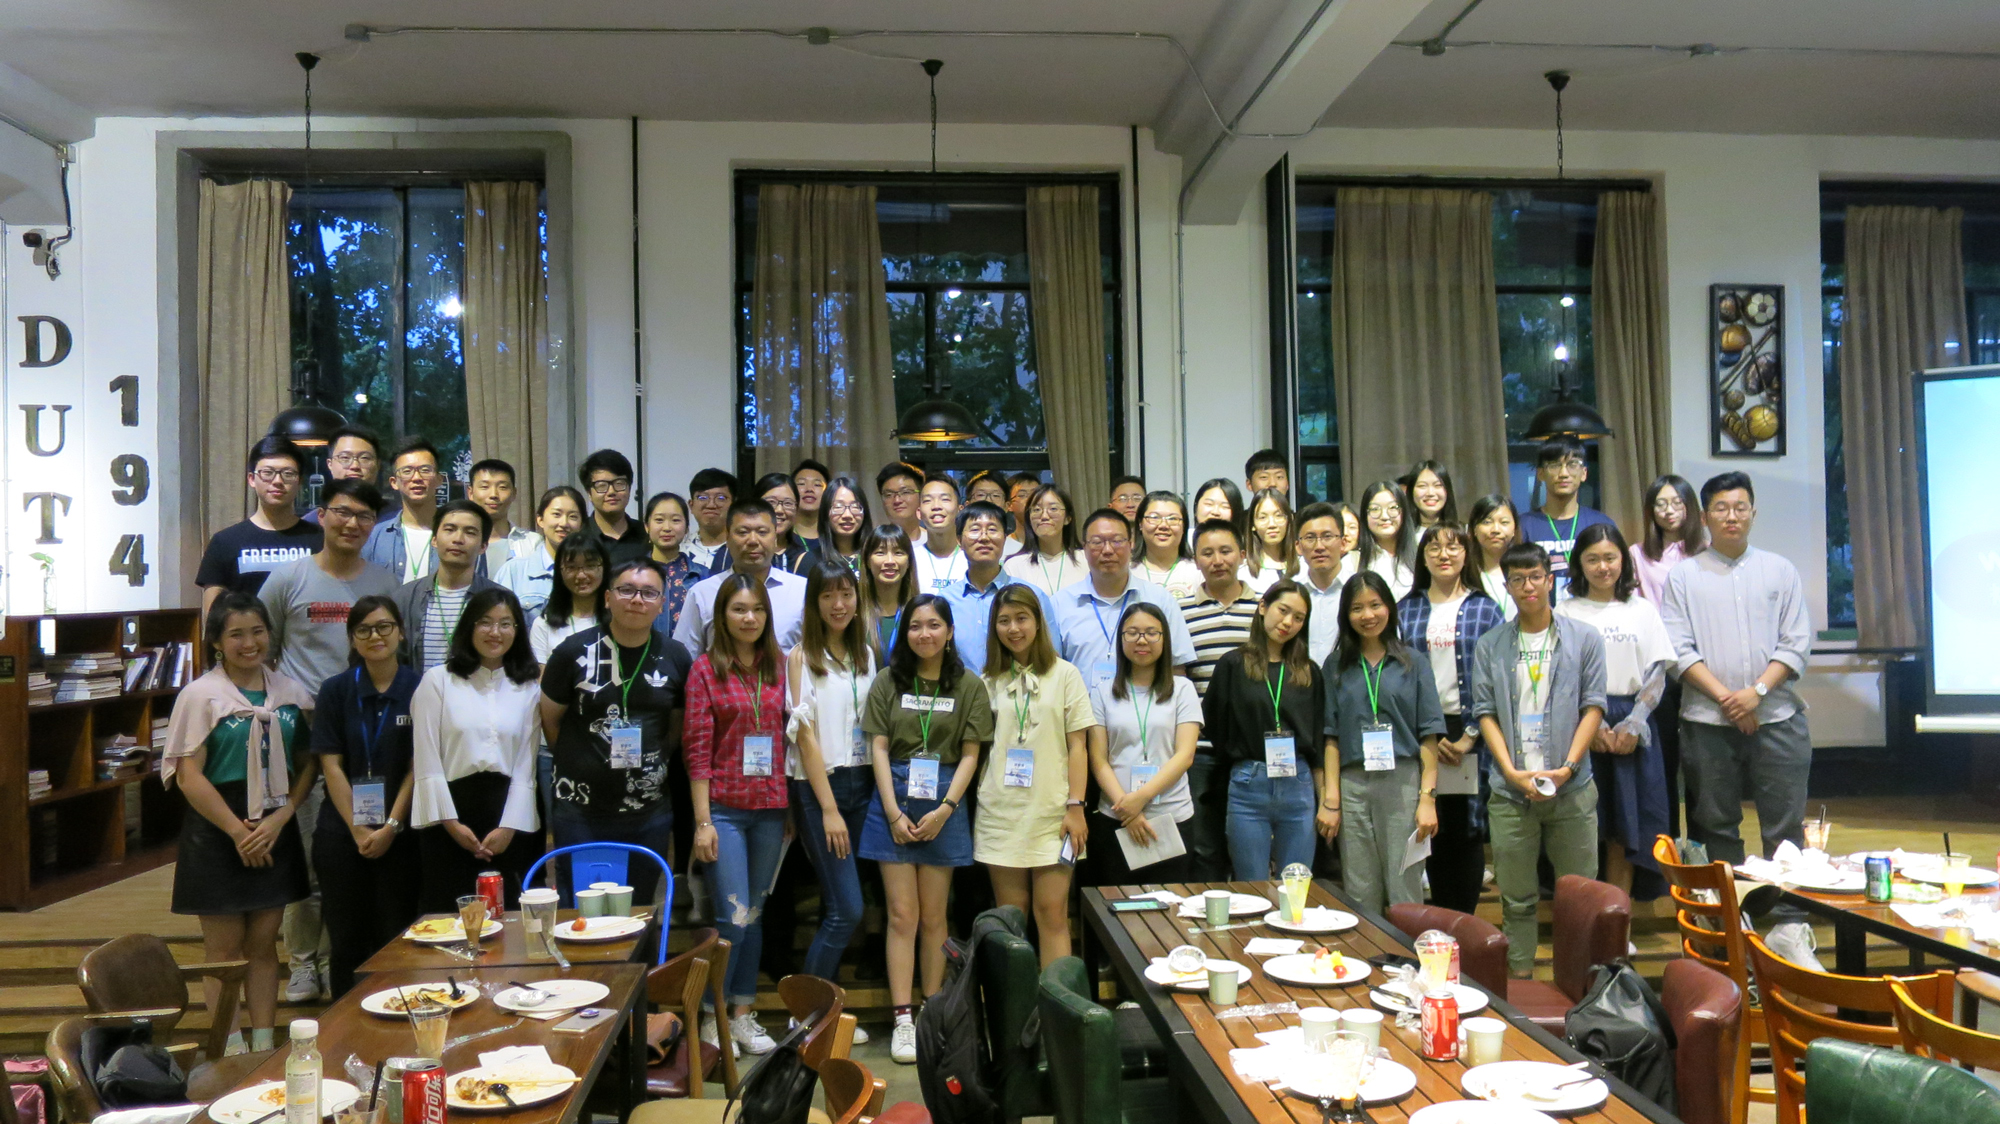 UM students with their counterparts from the Dalian University of Technology